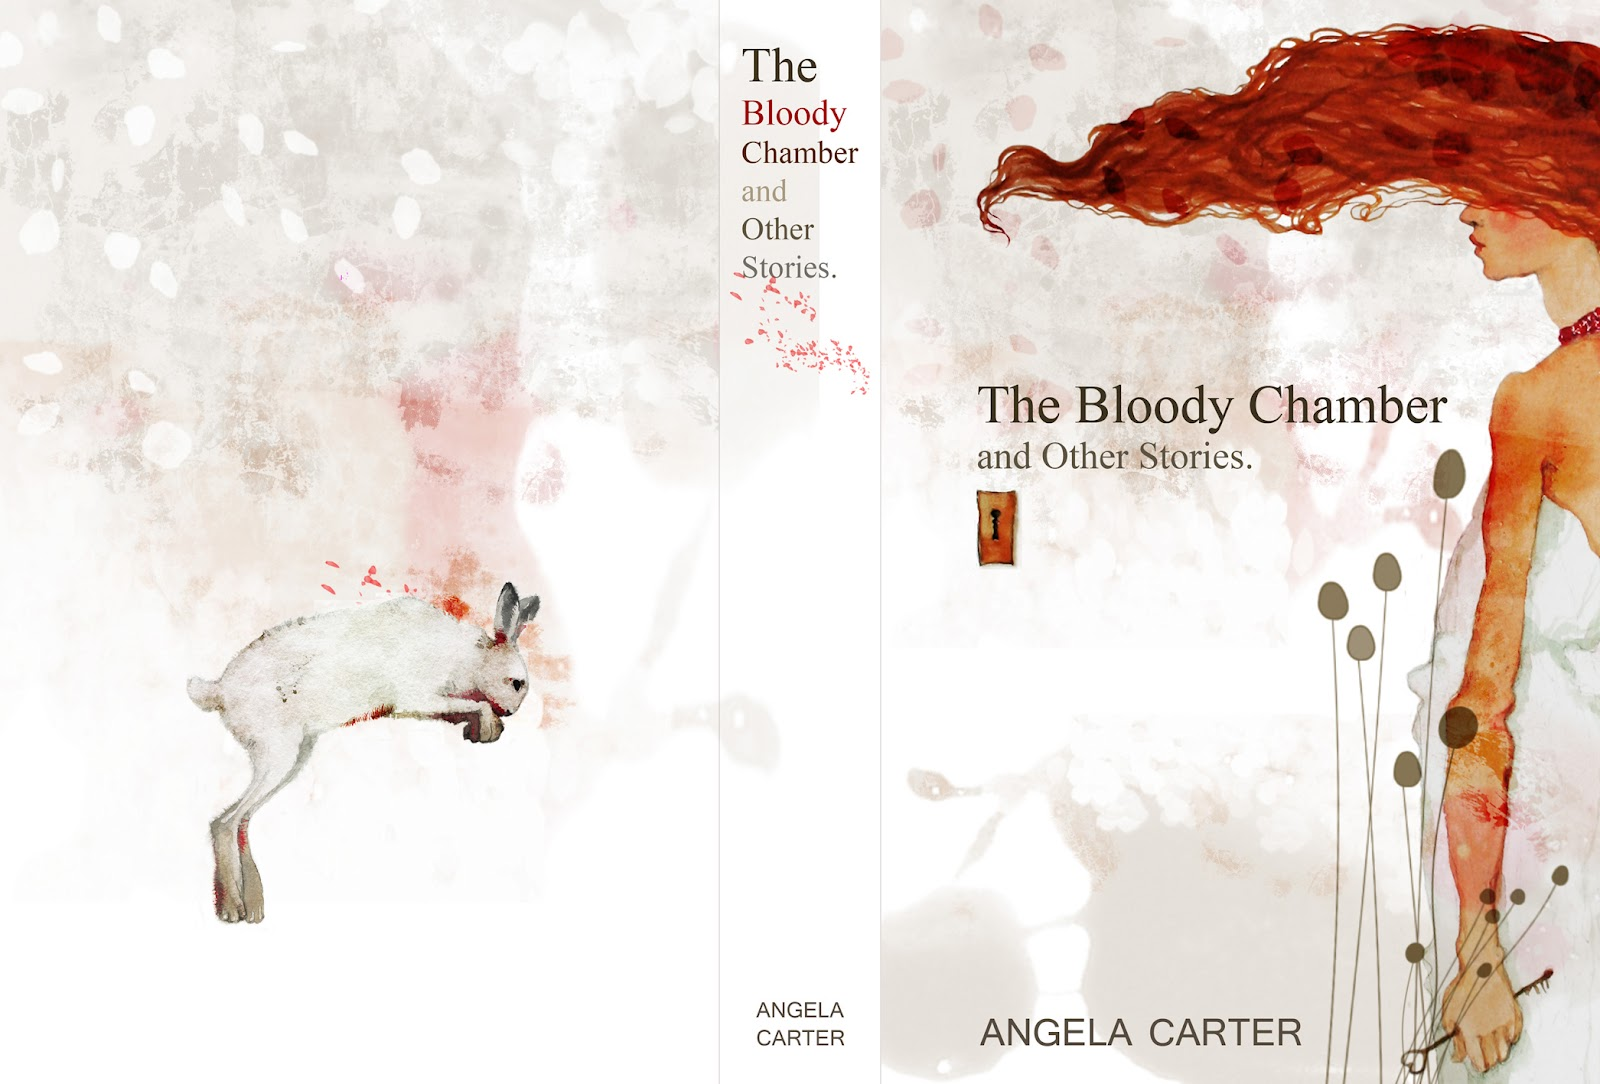 the bloody chamber angela carter 'the bloody chamber' – angela carter'the were-wolf' based on 'little red riding hood' story of inter-generational fem.